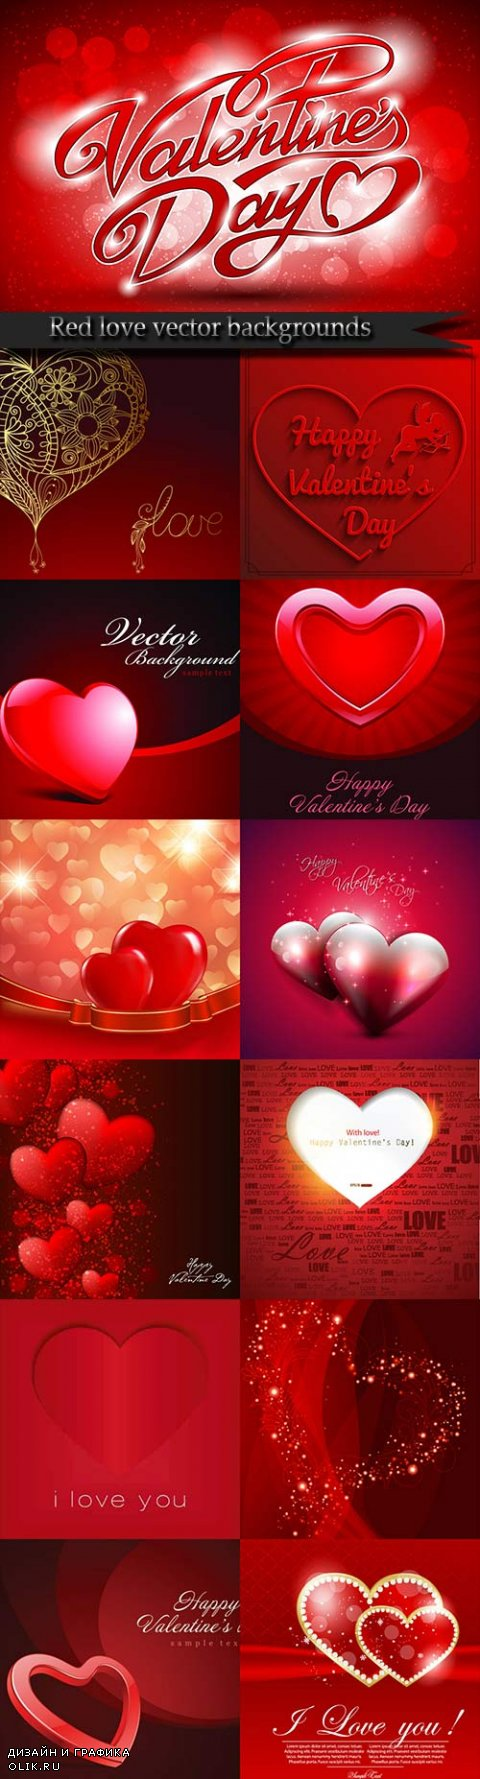 Red love vector backgrounds